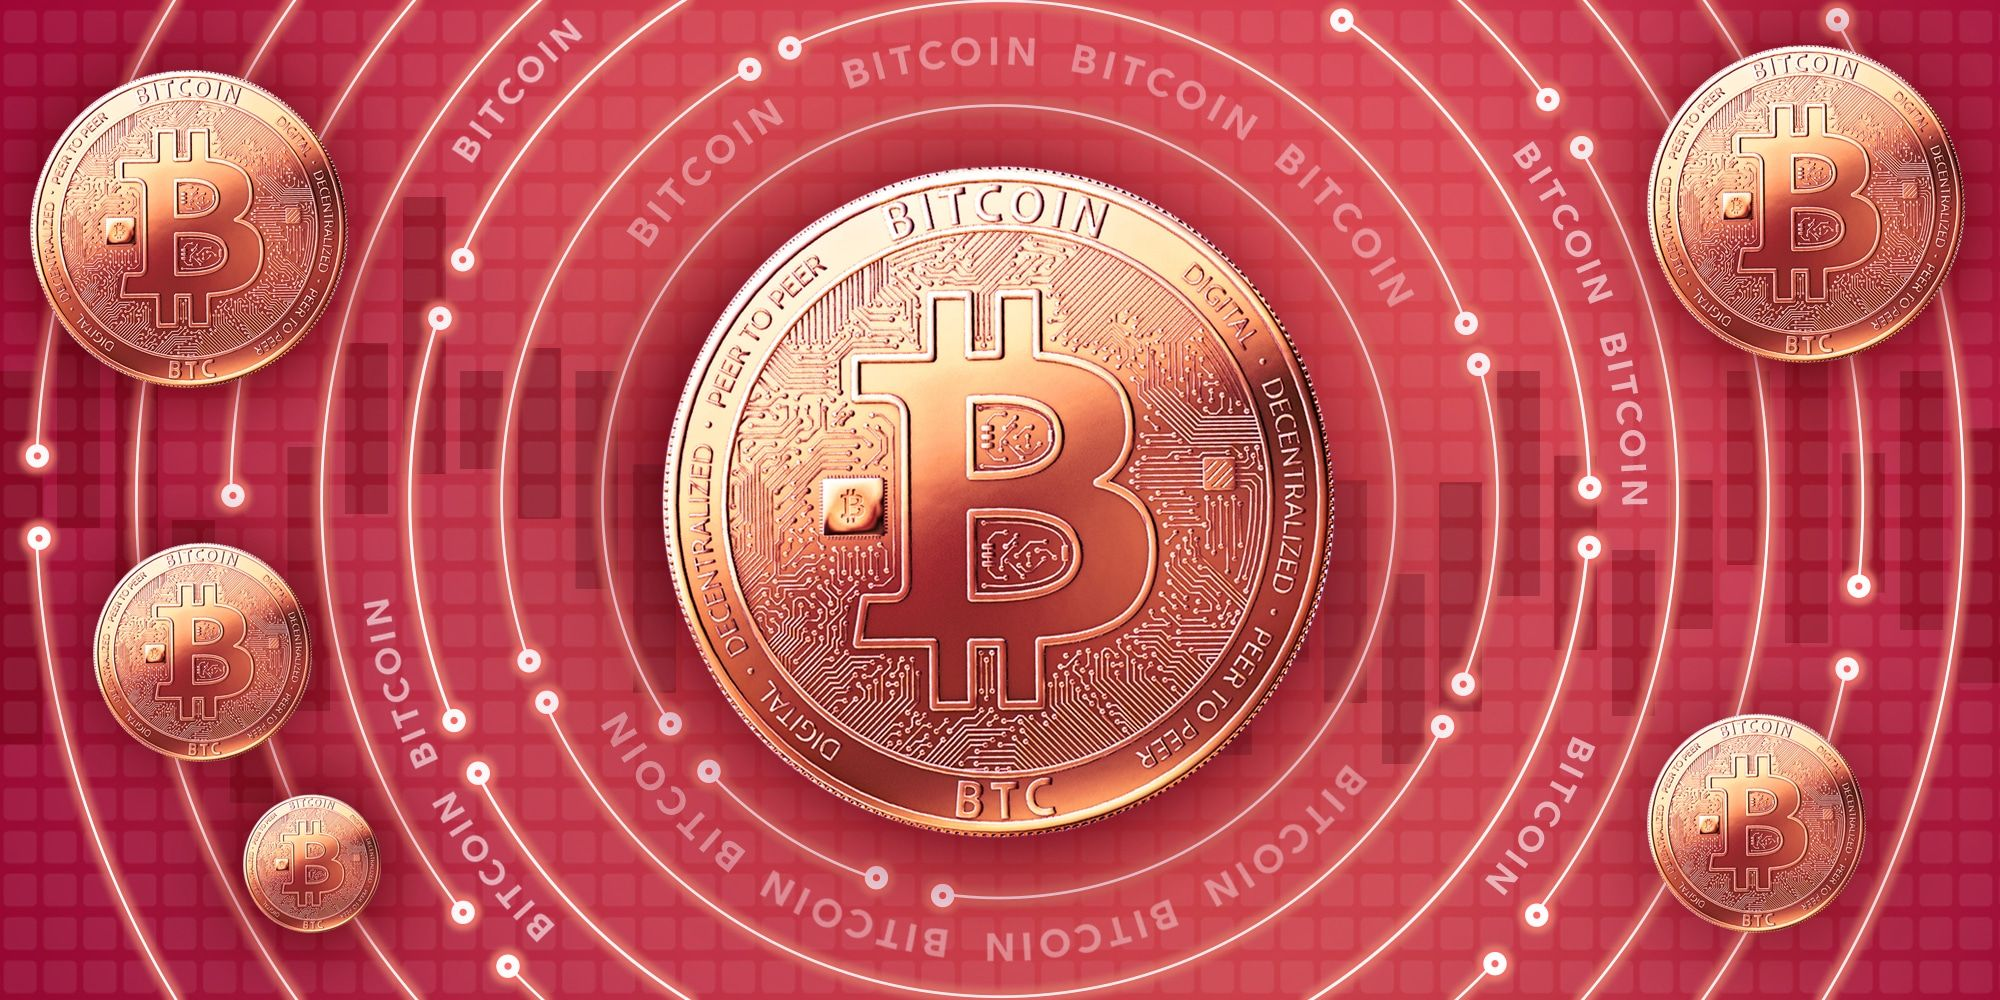 Pin on invest on bitcoin or ethereum